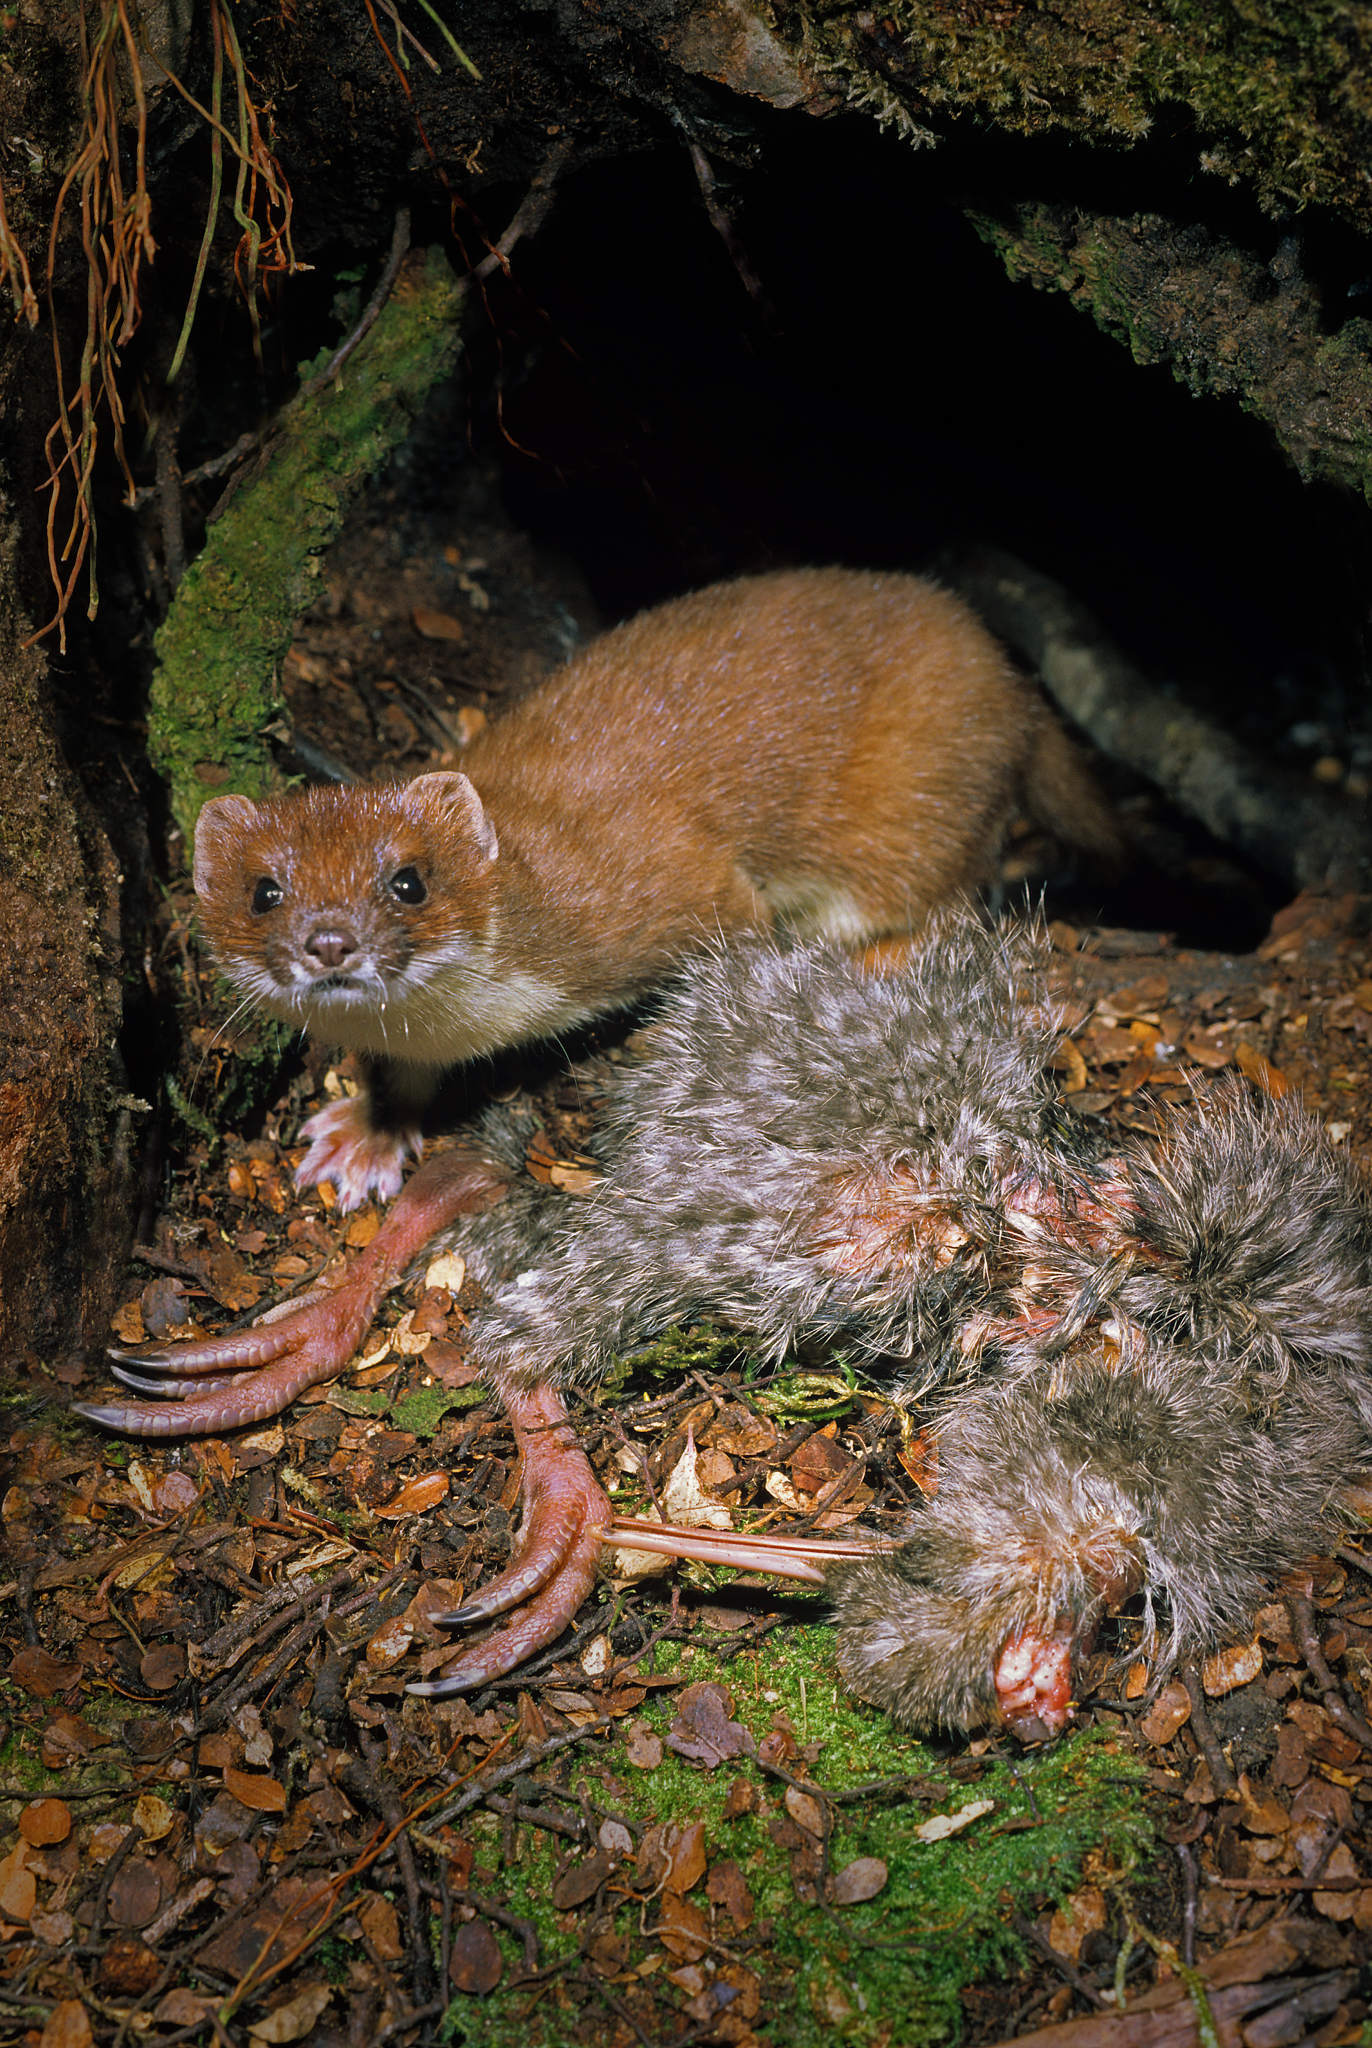 A stoat (Mustela erminea) guards its latest kill: a young great-spotted kiwi chick (Apteryx haastii), just outside the bird's burrow. Photograph by Rod Morris / www.rodmorris.co.nz